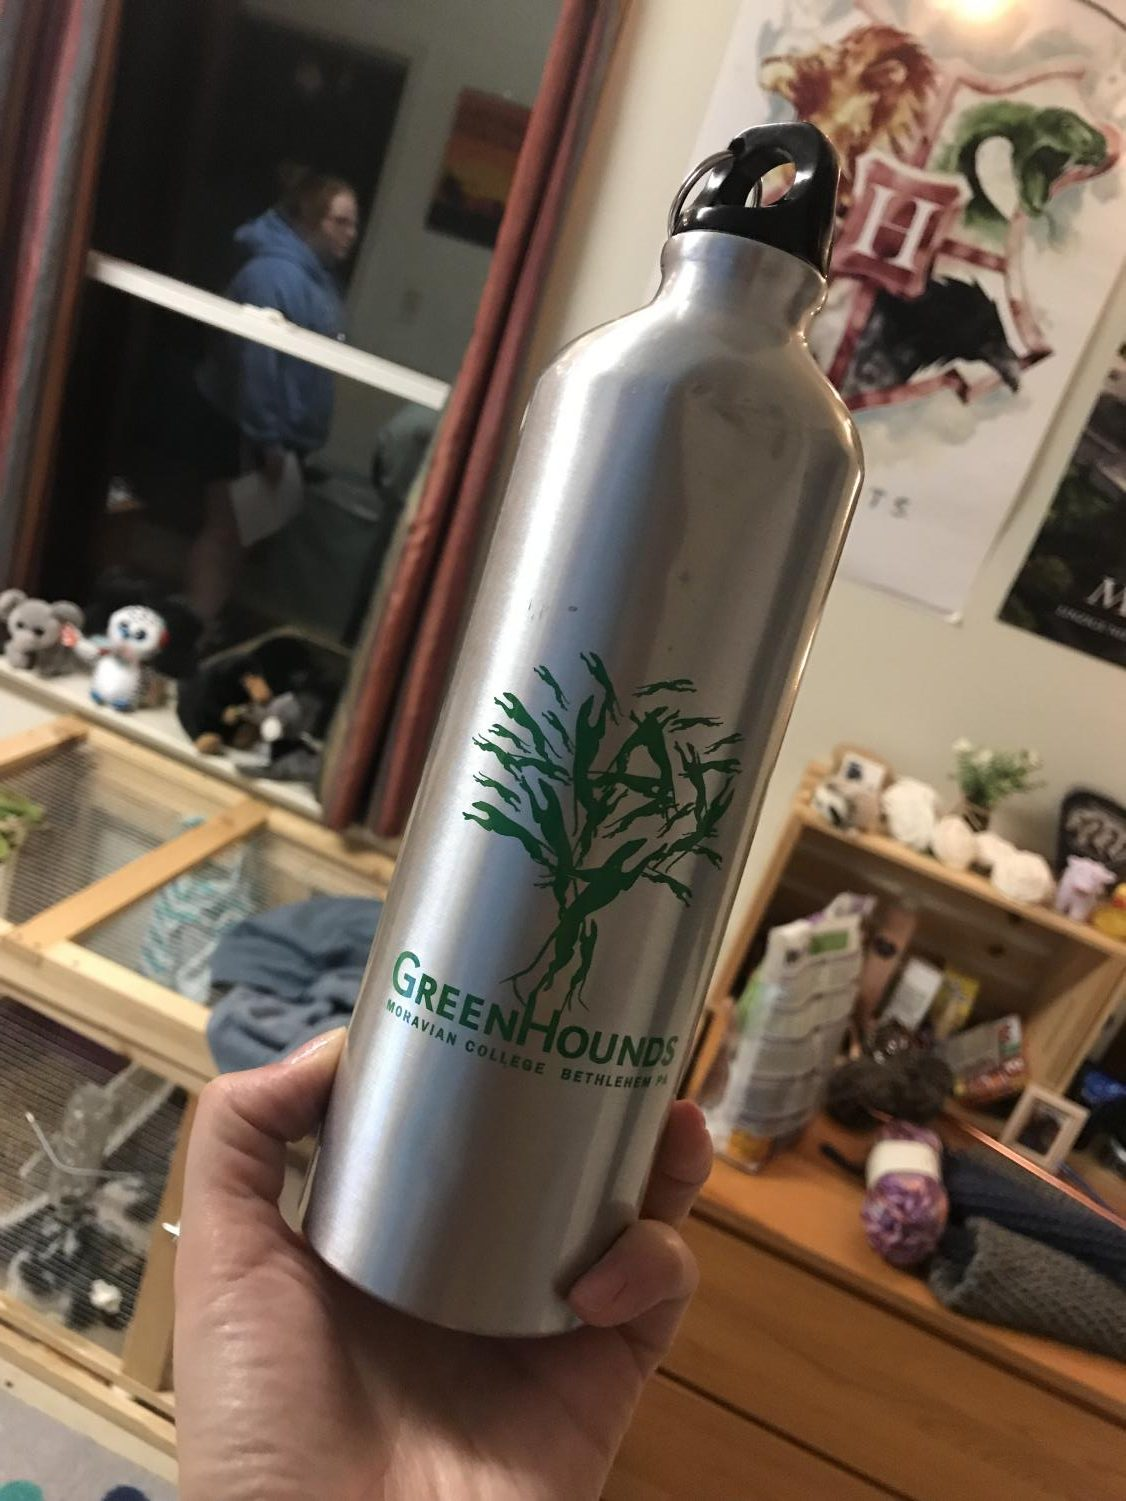 A reusable water bottle, which is one of the best ways to be more sustainable around campus.